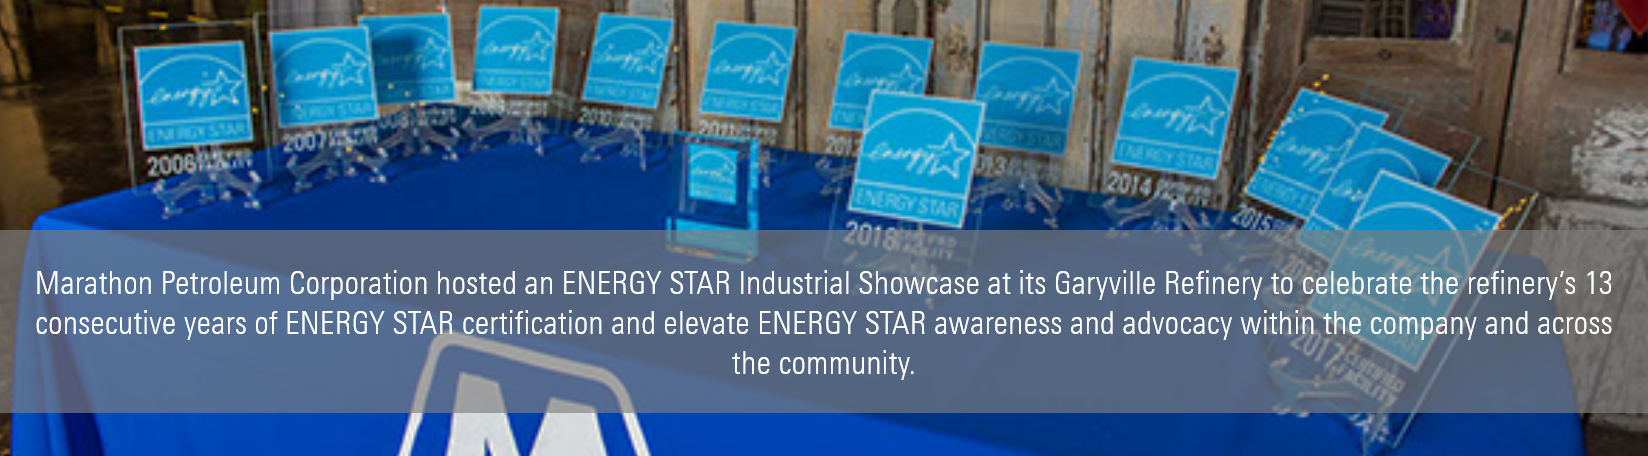 Marathon Petroleum Corporation hosted an ENERGY STAR Industrial Showcase at its Garyville Refinery to celebrate the refinery's 1